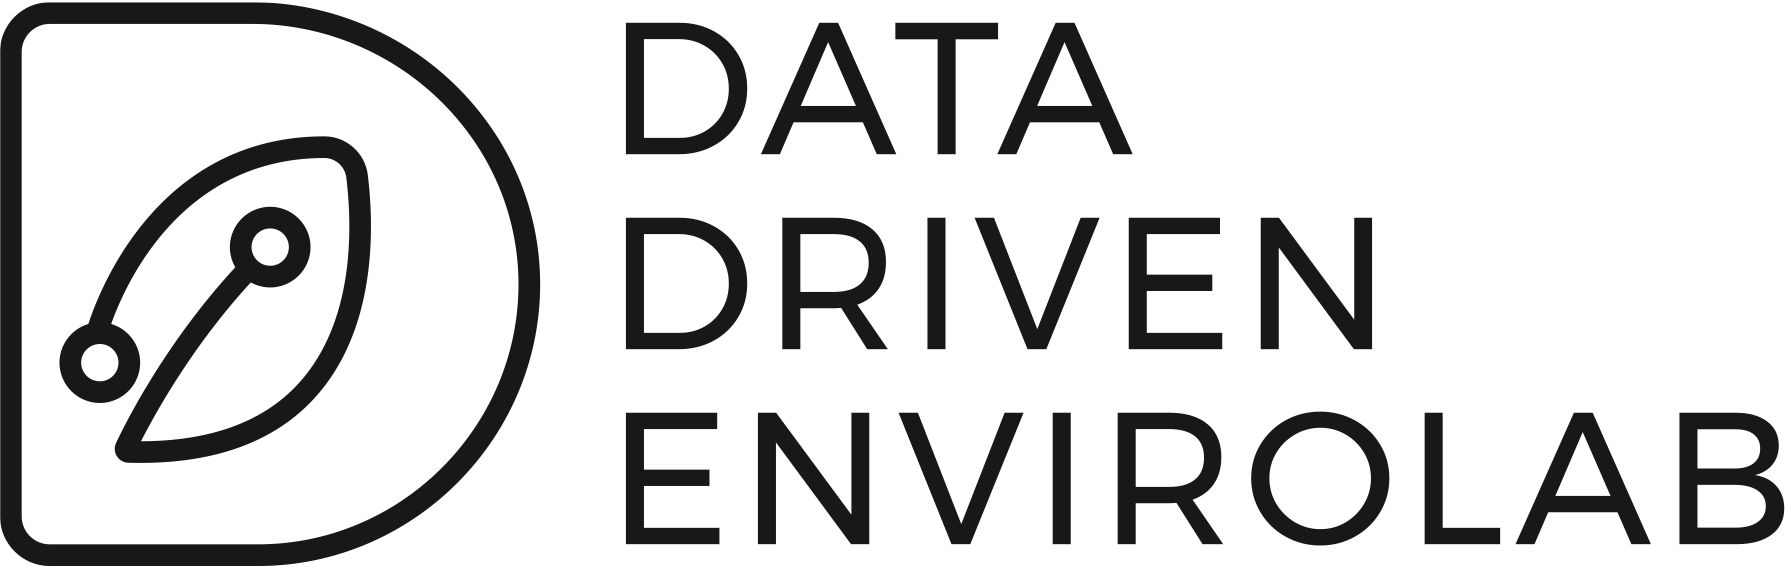 Data-Driven EnviroLab